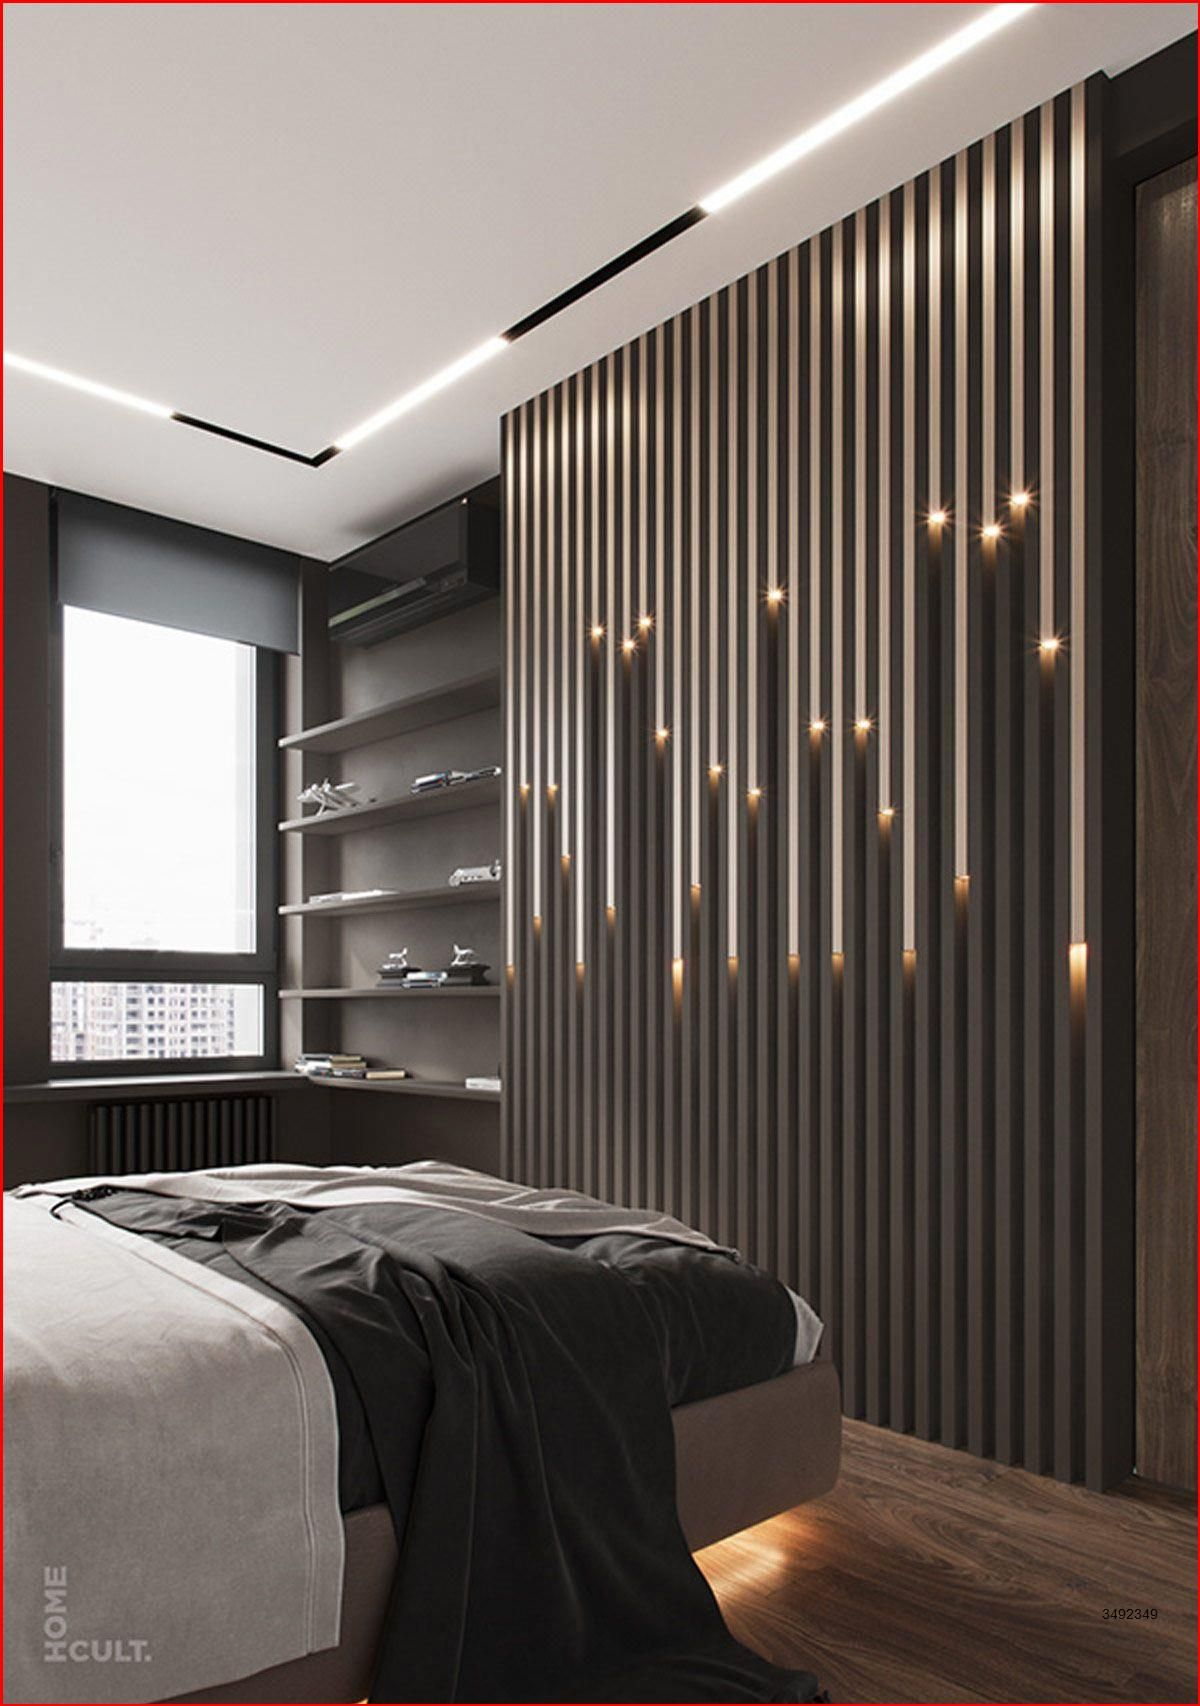 Wooden Decorative Design Special Process Triple Rope Shelf Bookcase In 2020 Luxurious Bedrooms Home Room Design Interior Design Bedroom